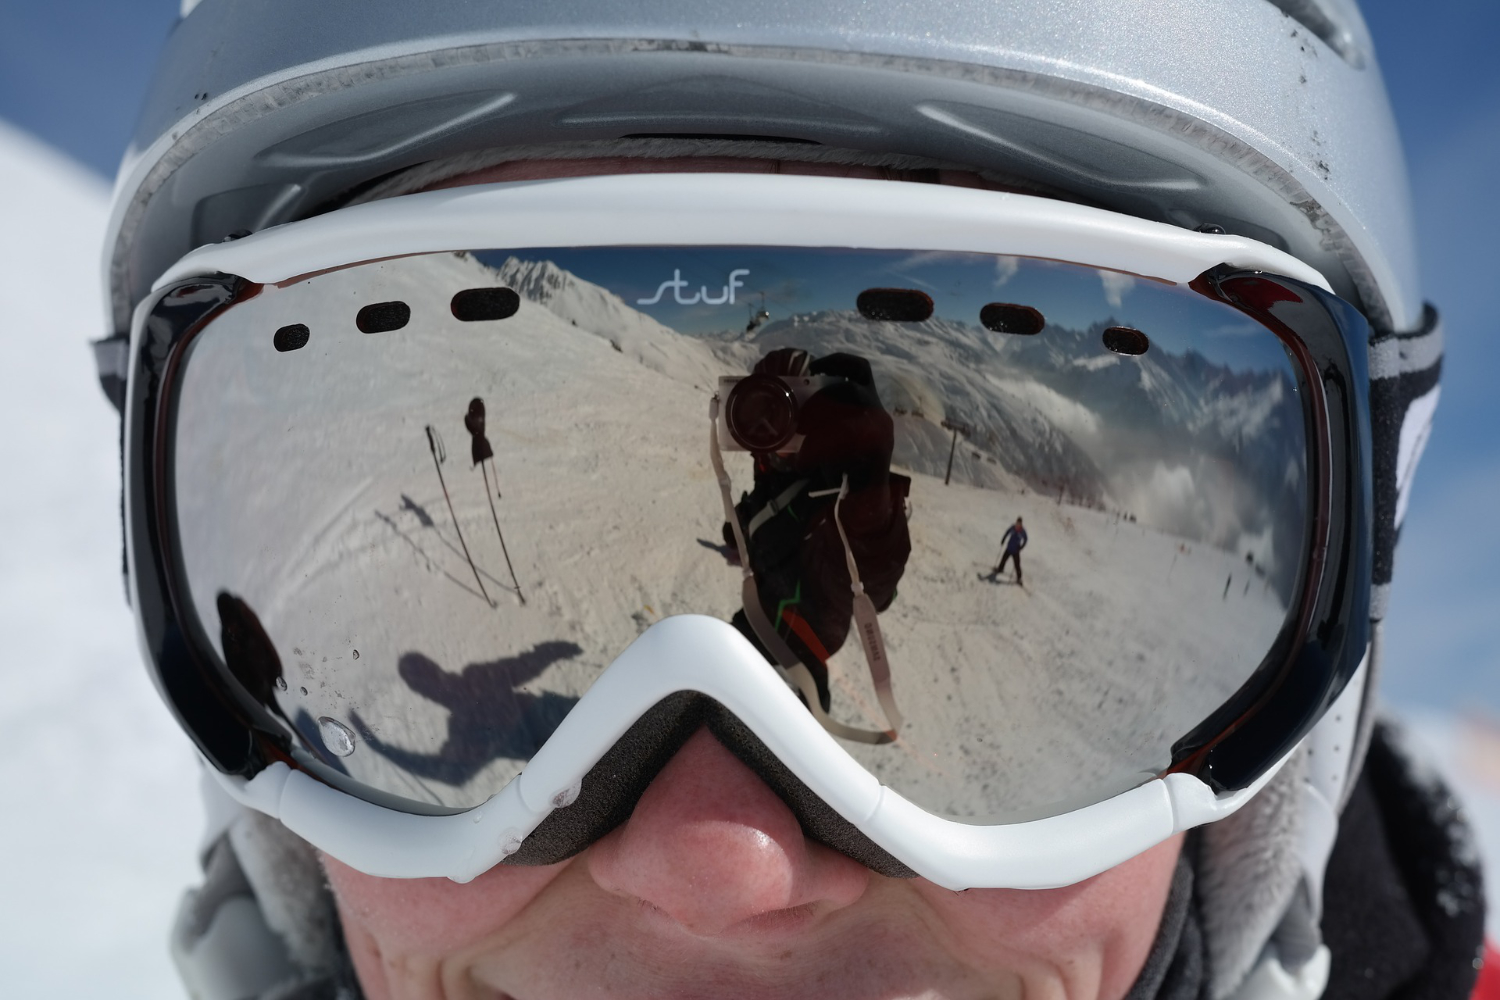 silver lens ski goggles reflection